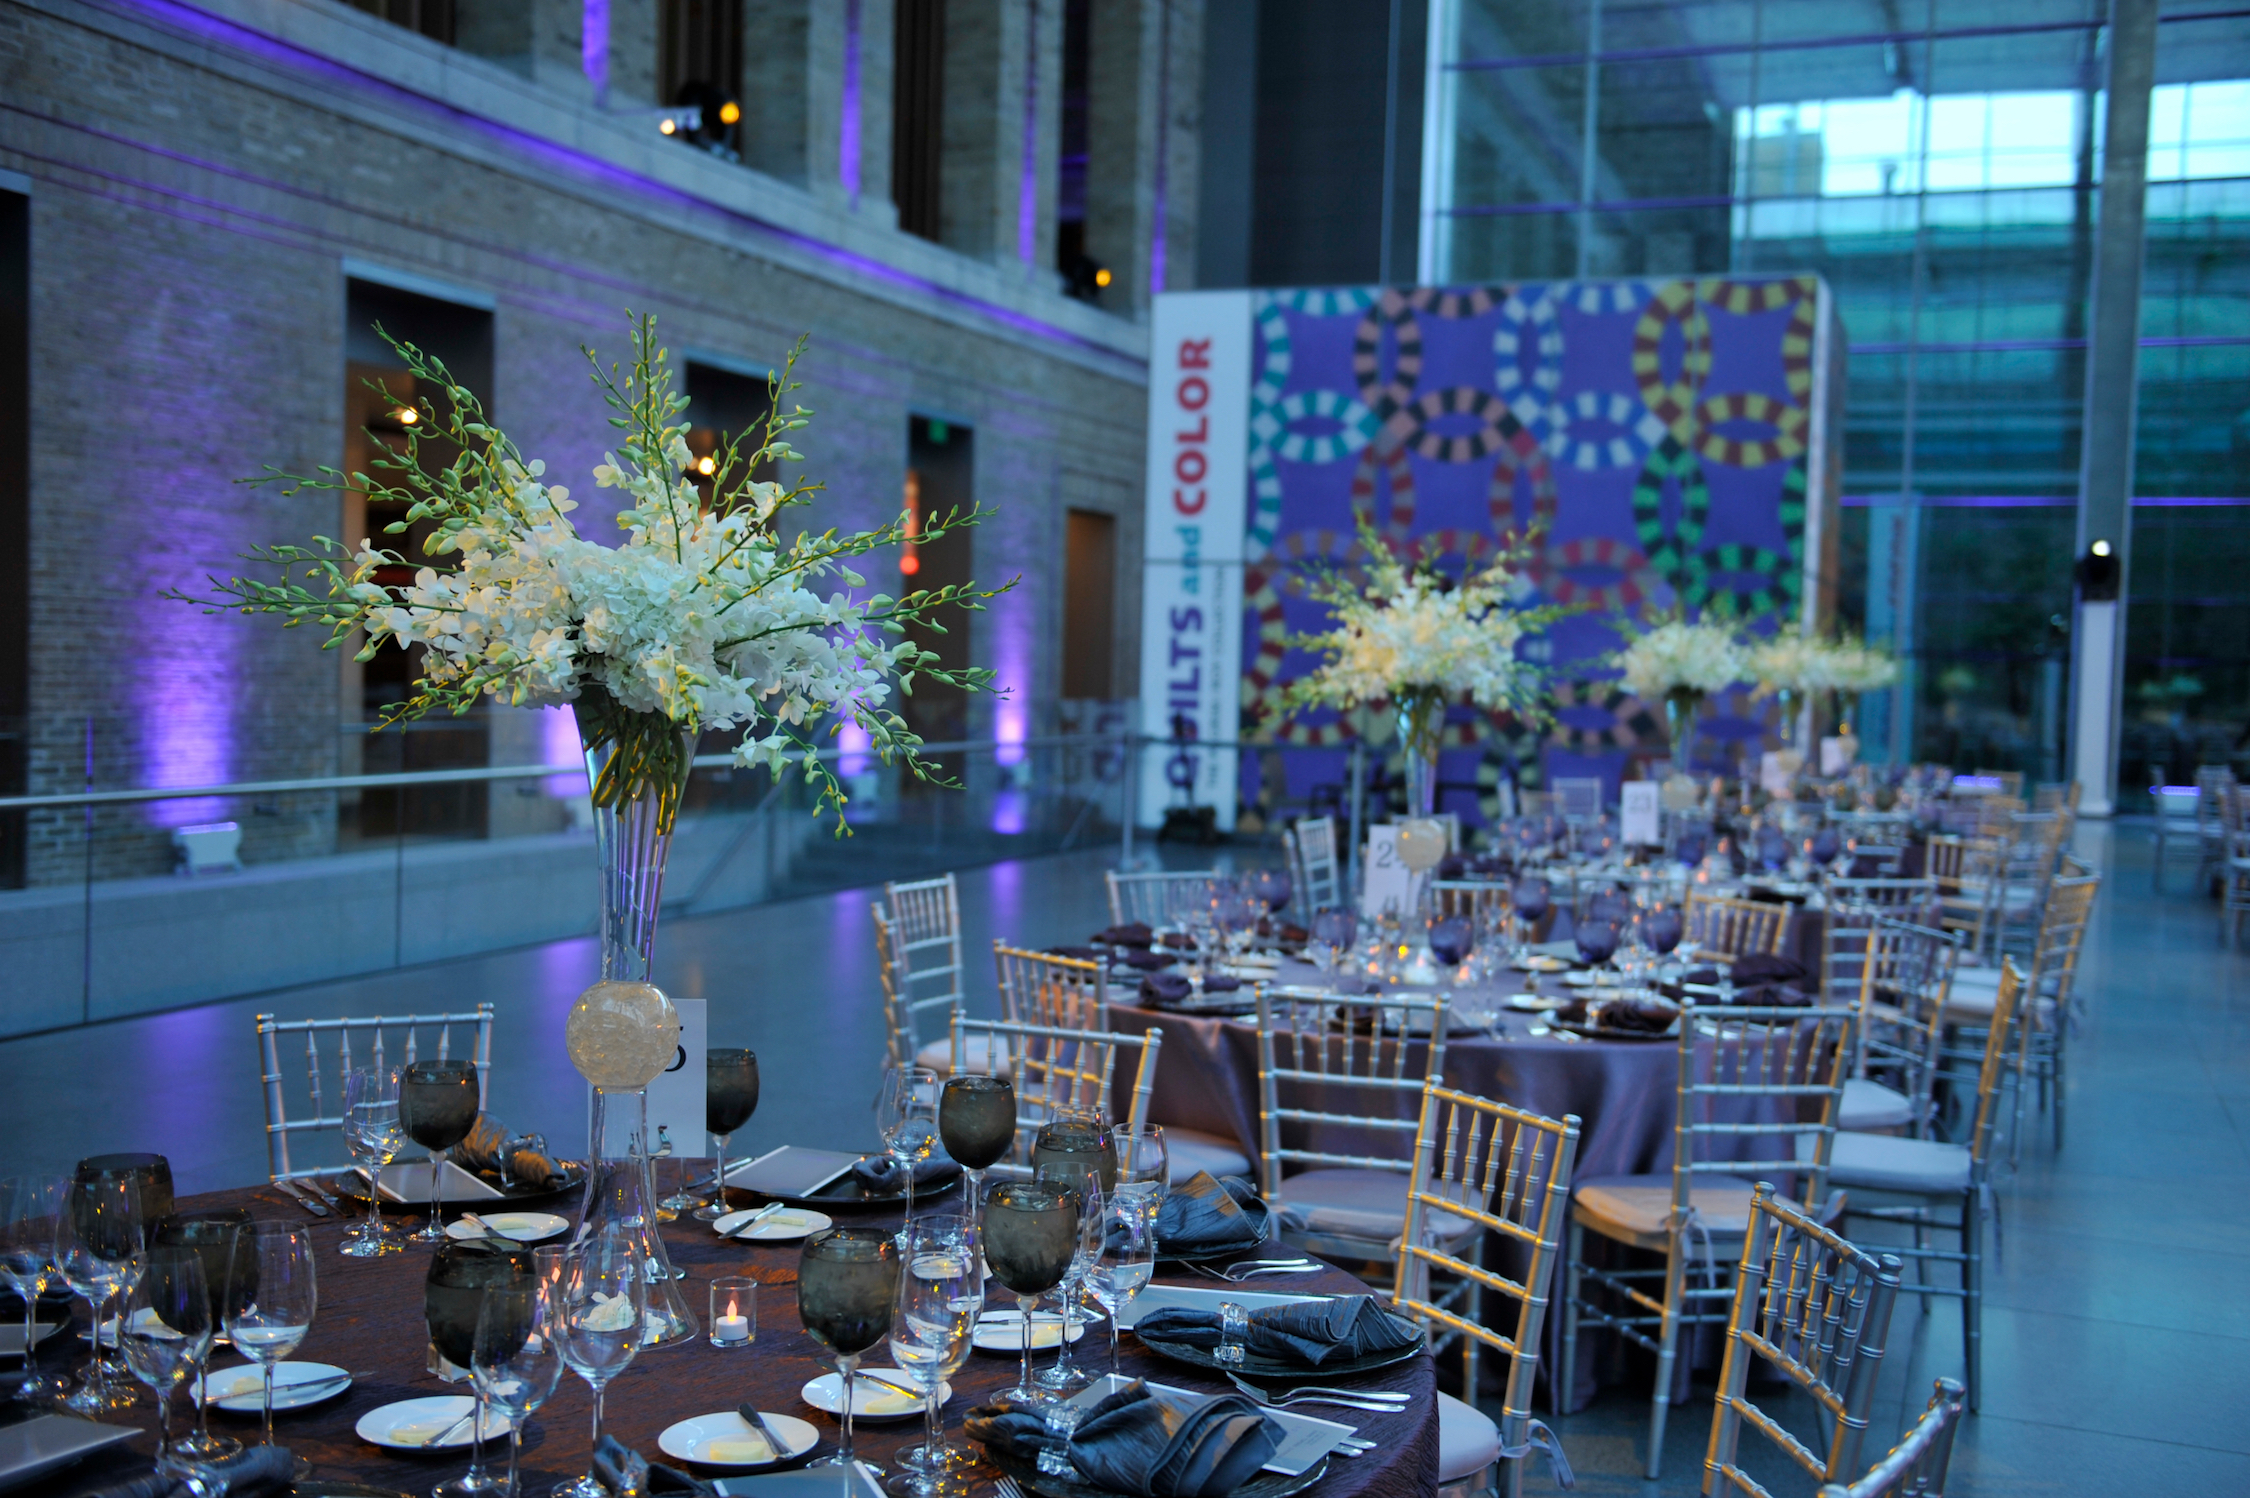 White floral centerpieces on purple tables with silver chairs in a vaulted, glass and stone room.